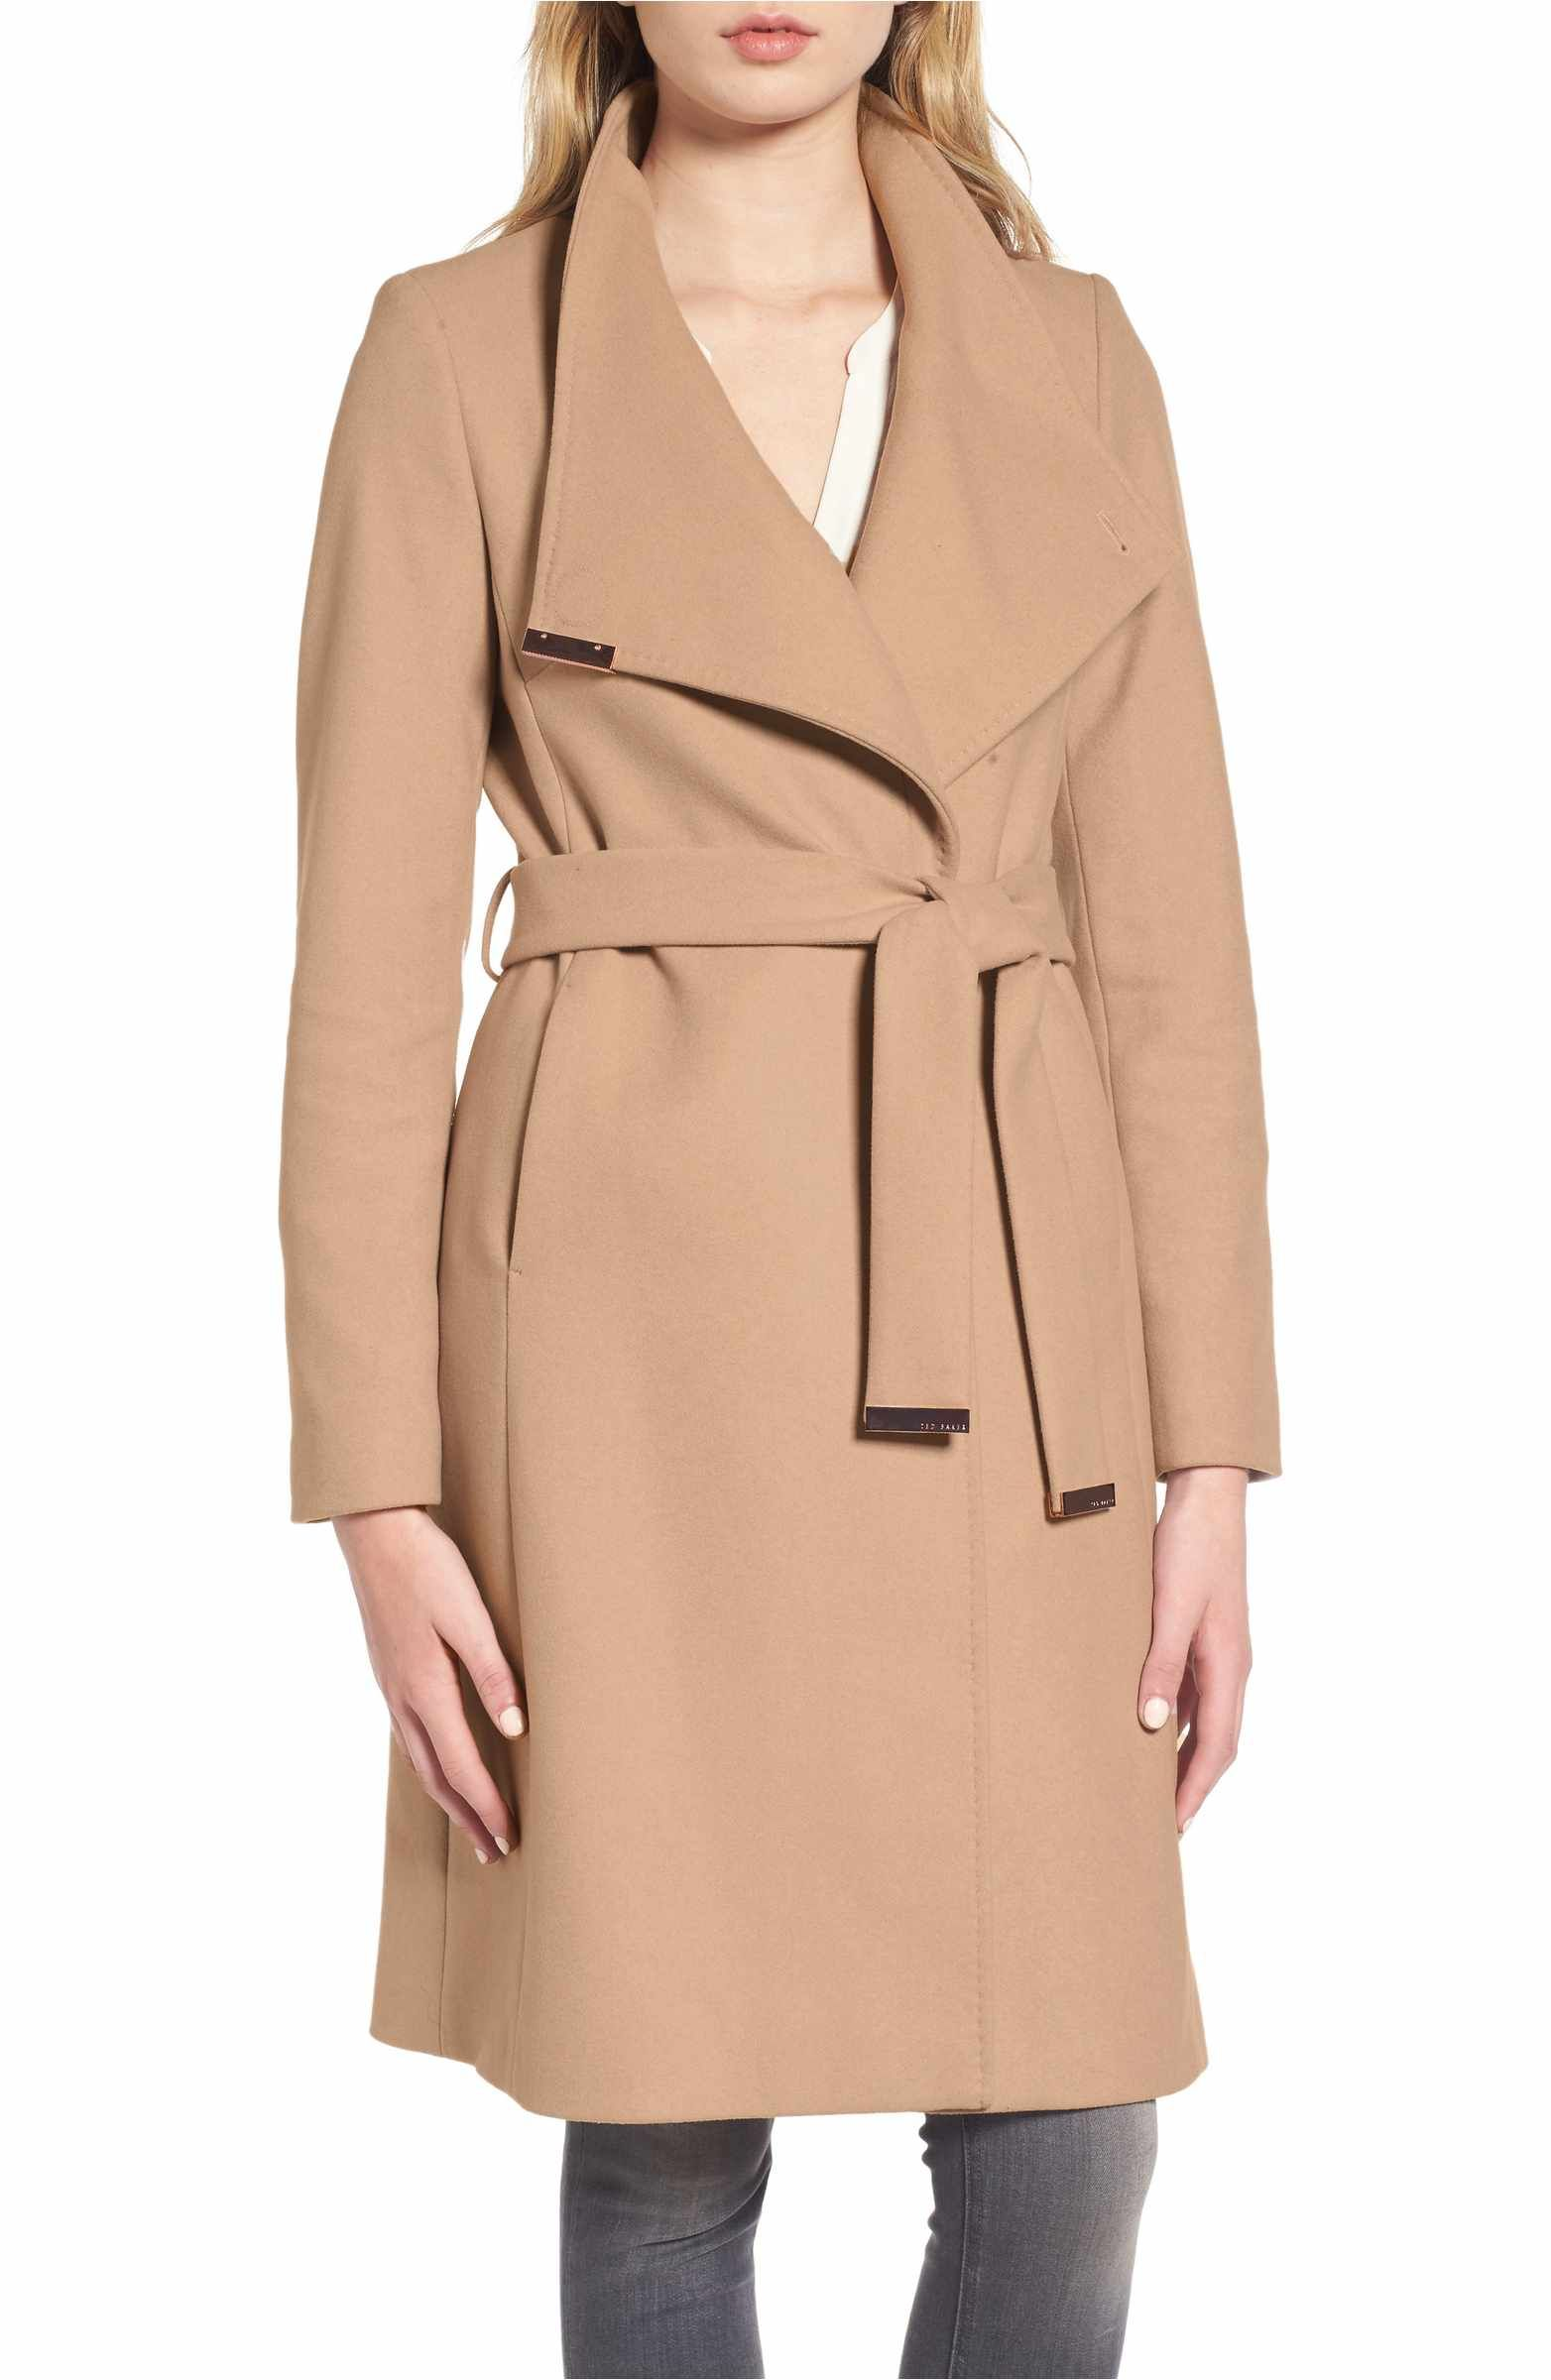 2279f3b64 Main Image - Ted Baker London Wool Blend Long Wrap Coat